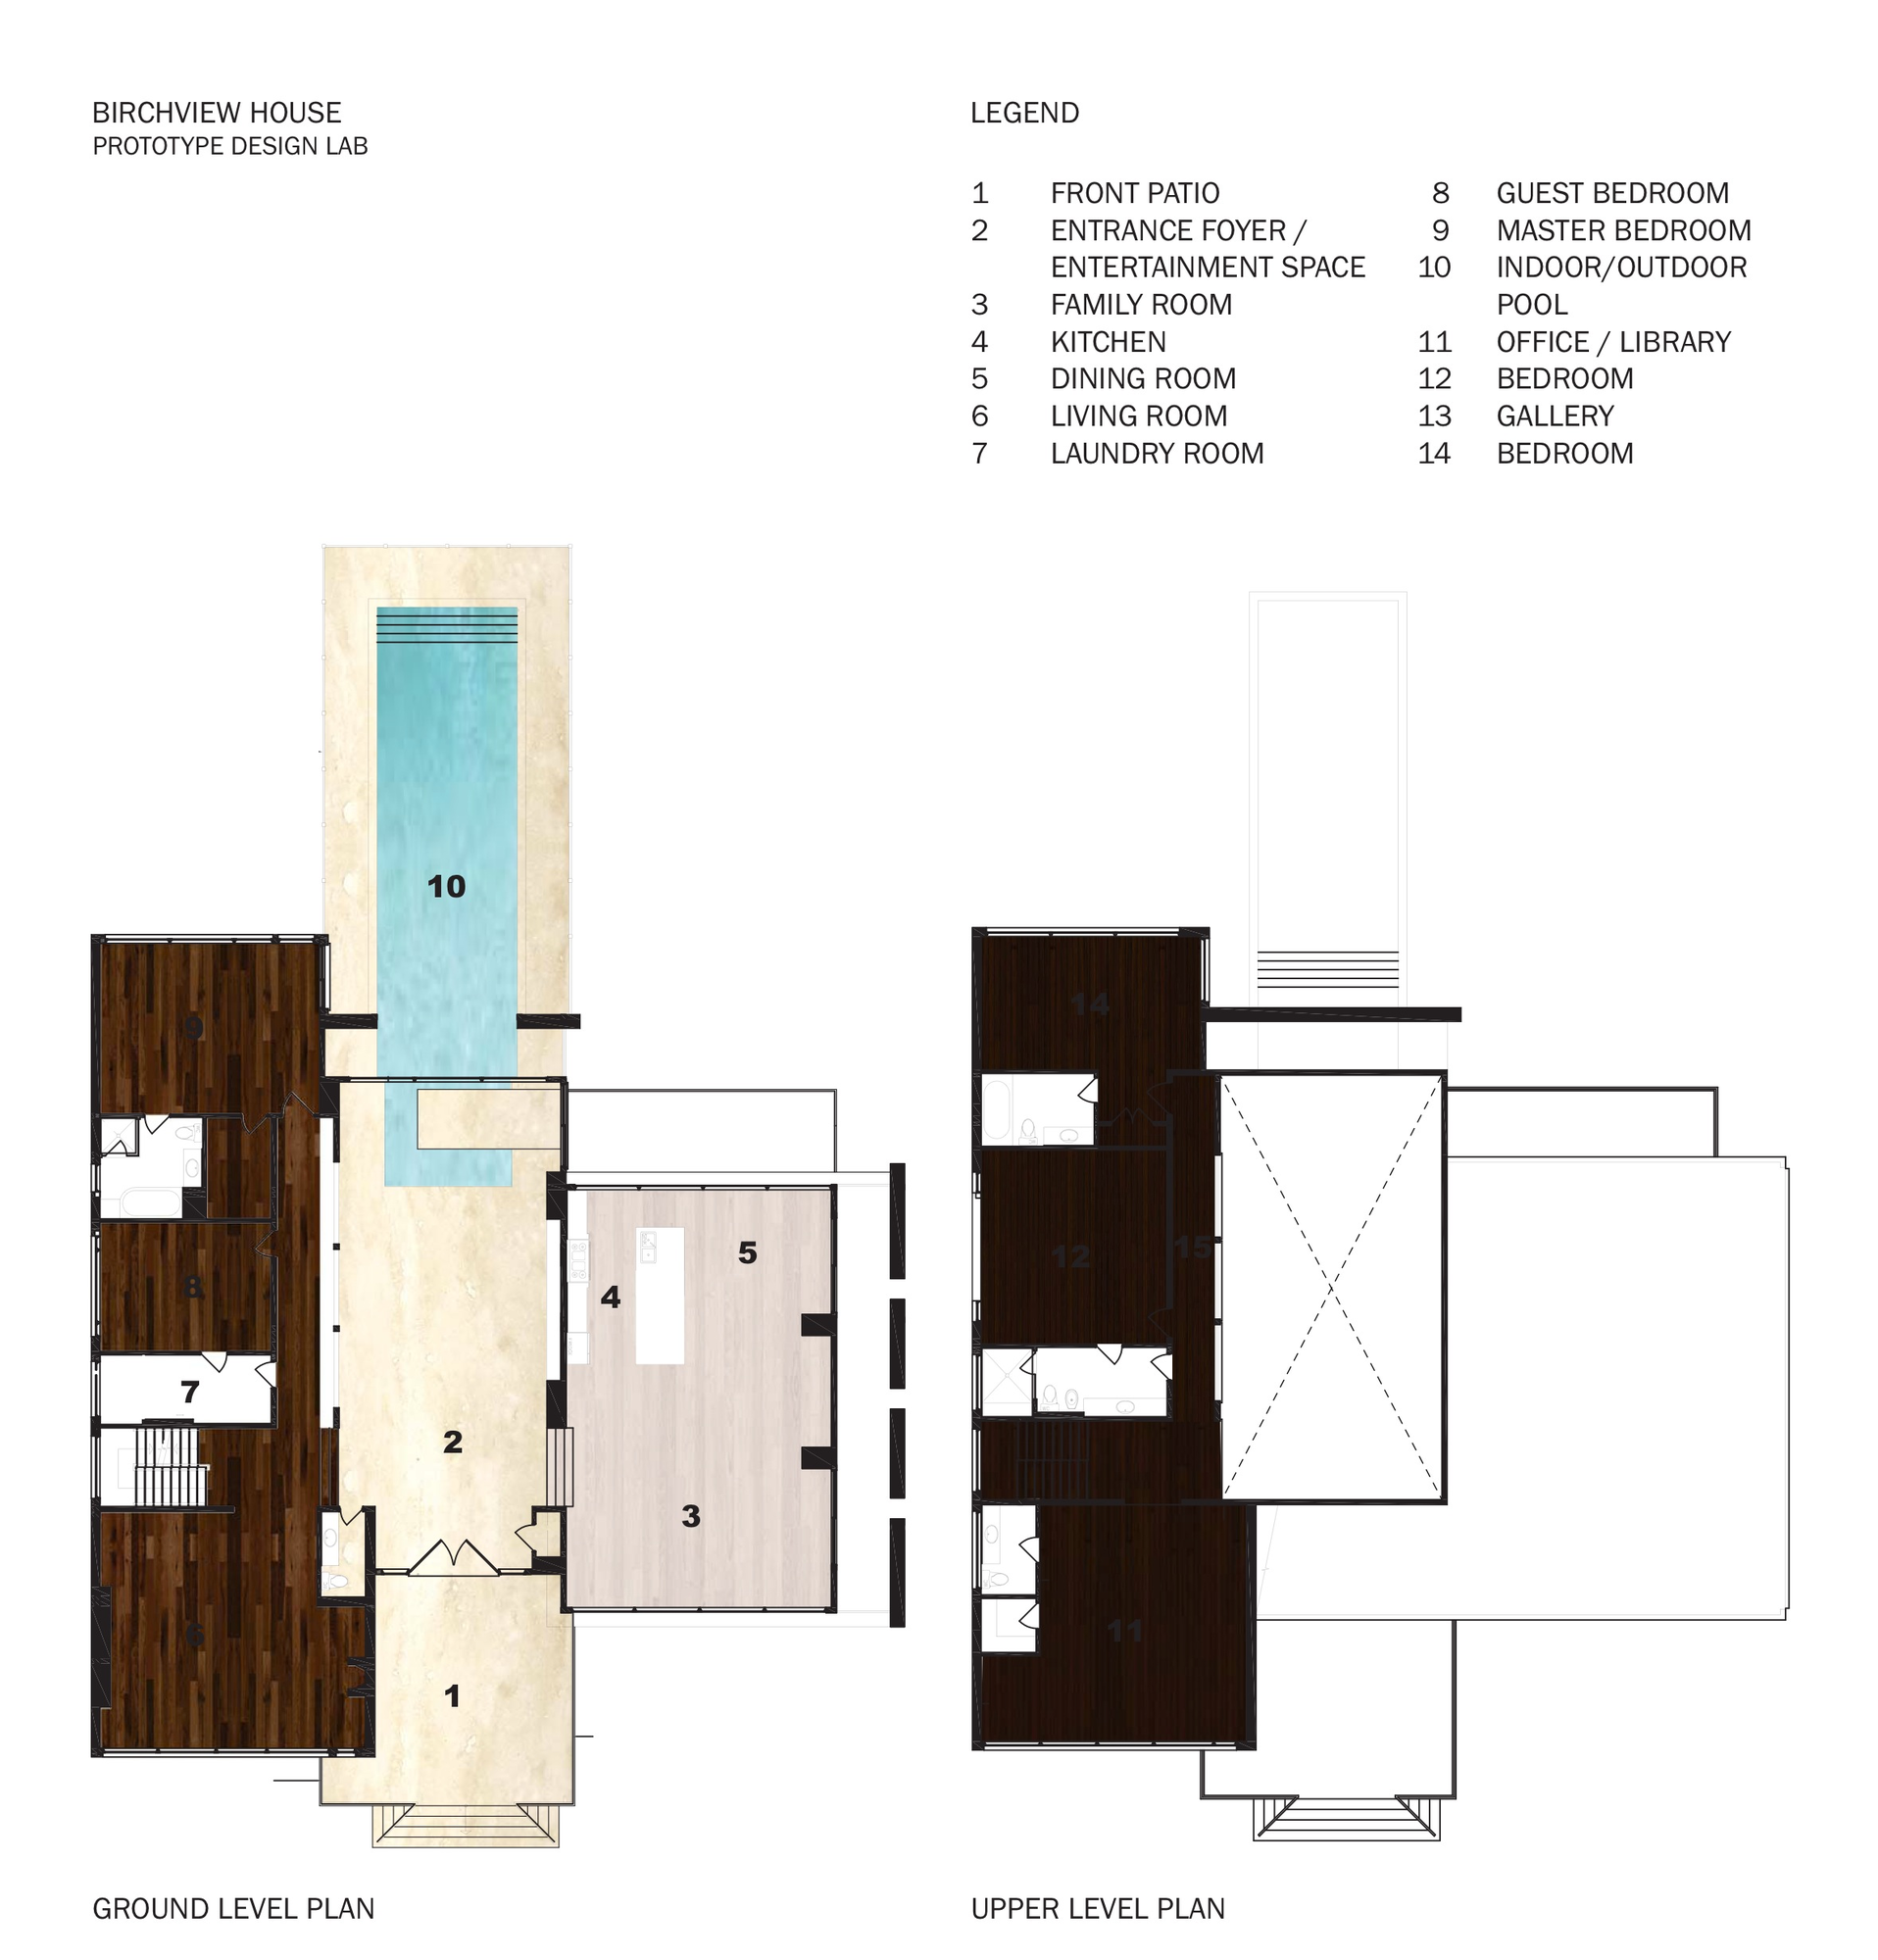 Gallery of the birchview house prototype design lab 10 for Prototype house plan